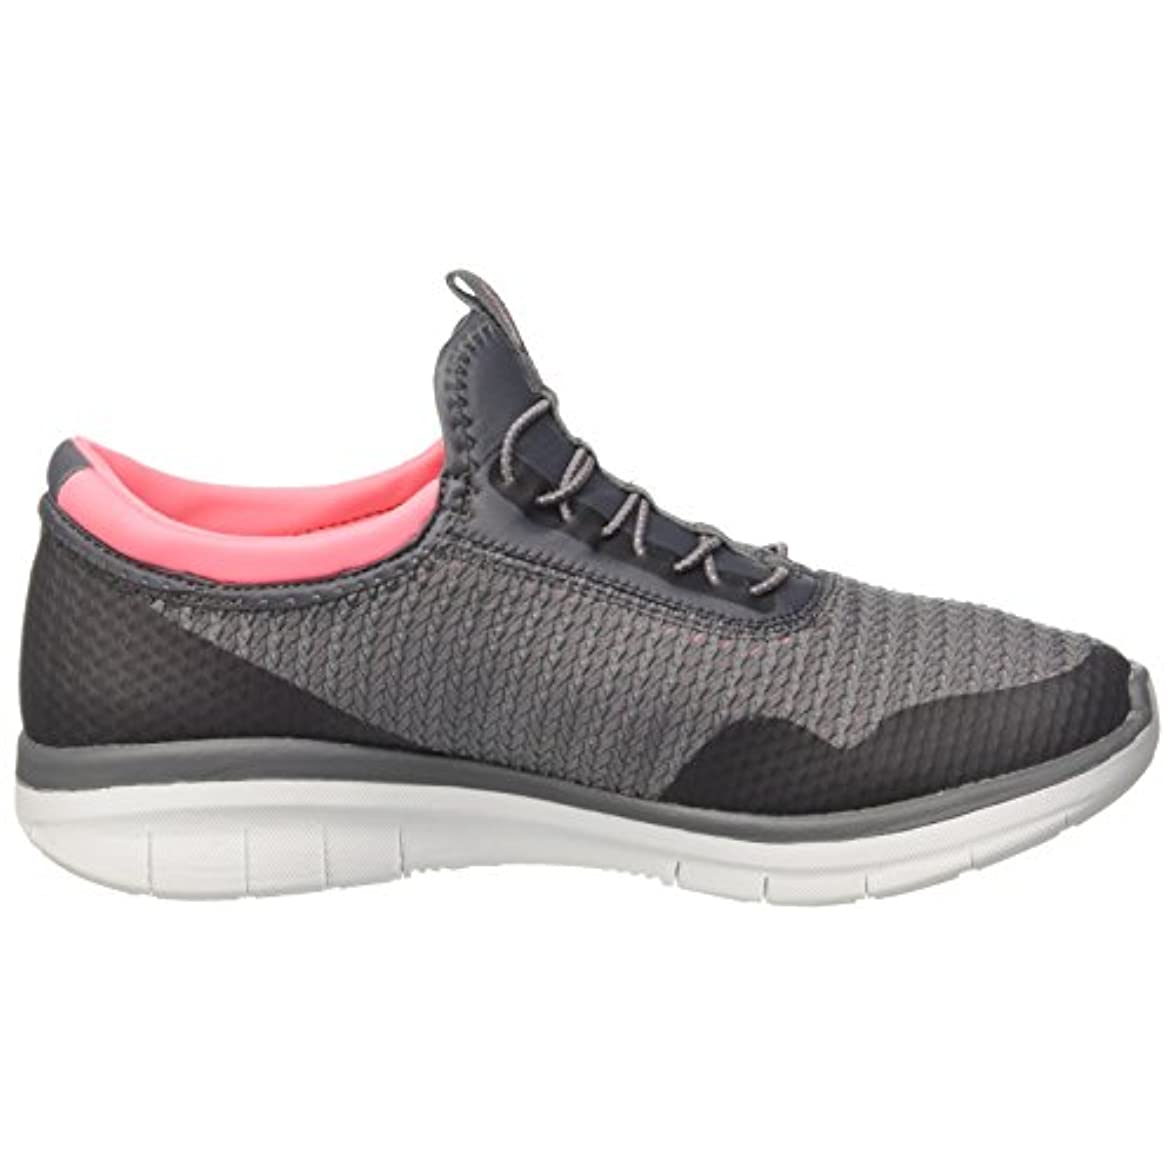 Skechers Synergy 2 0-mirror Image Sneaker Infilare Donna